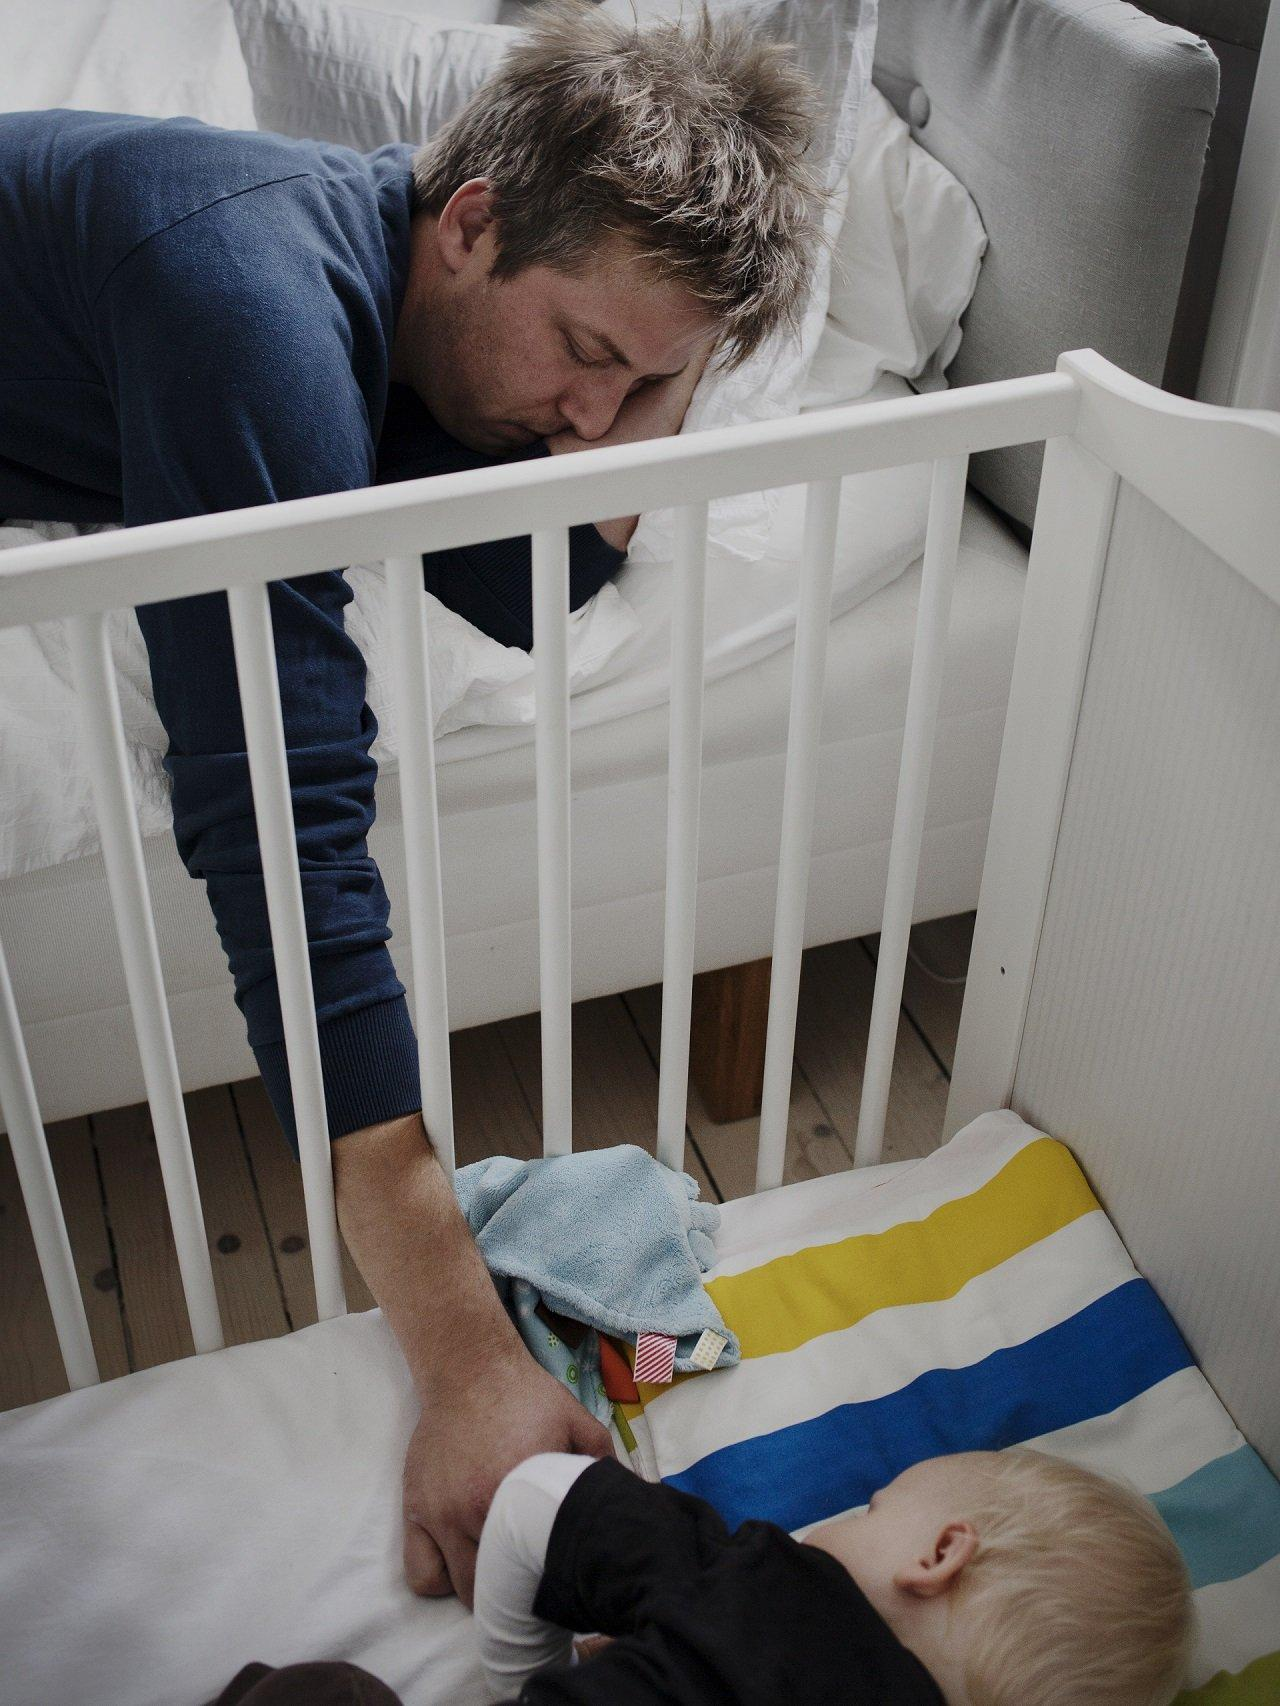 20 Swedish Dads Caring For The Children While On Maternity Leave